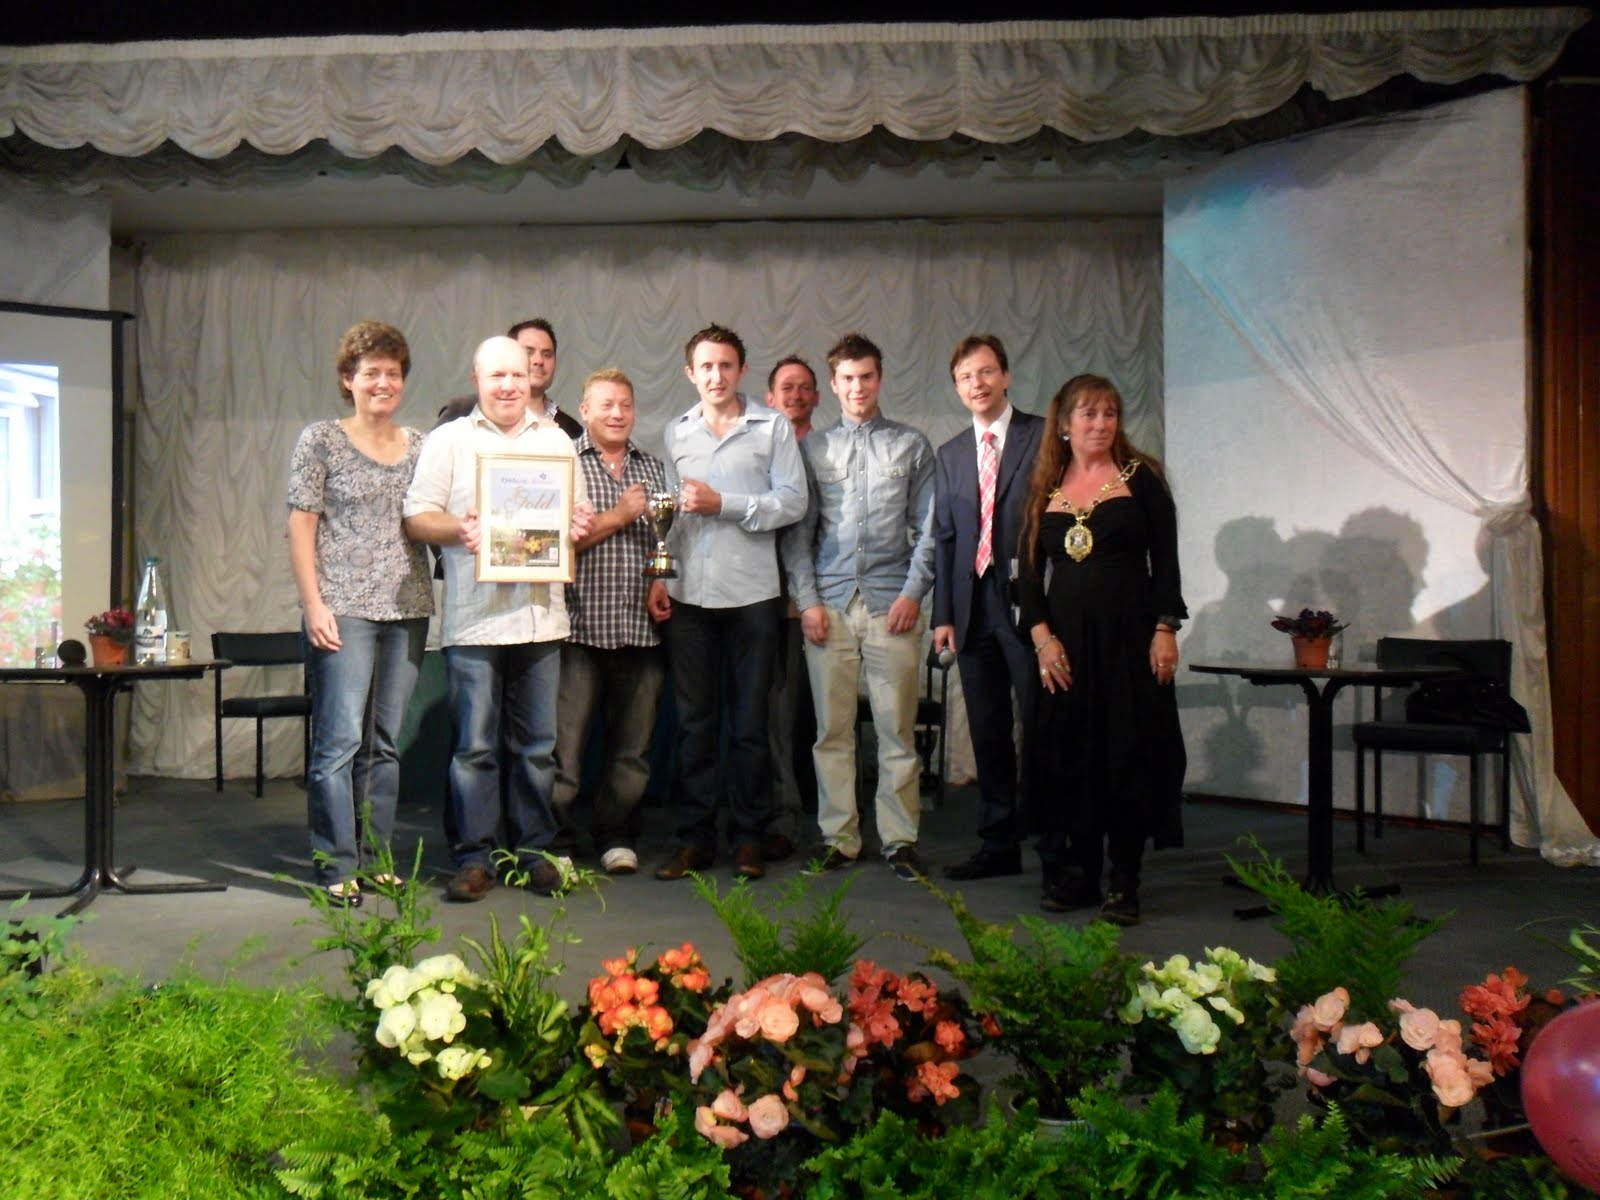 Worcester College Gardeners And The Winner Is